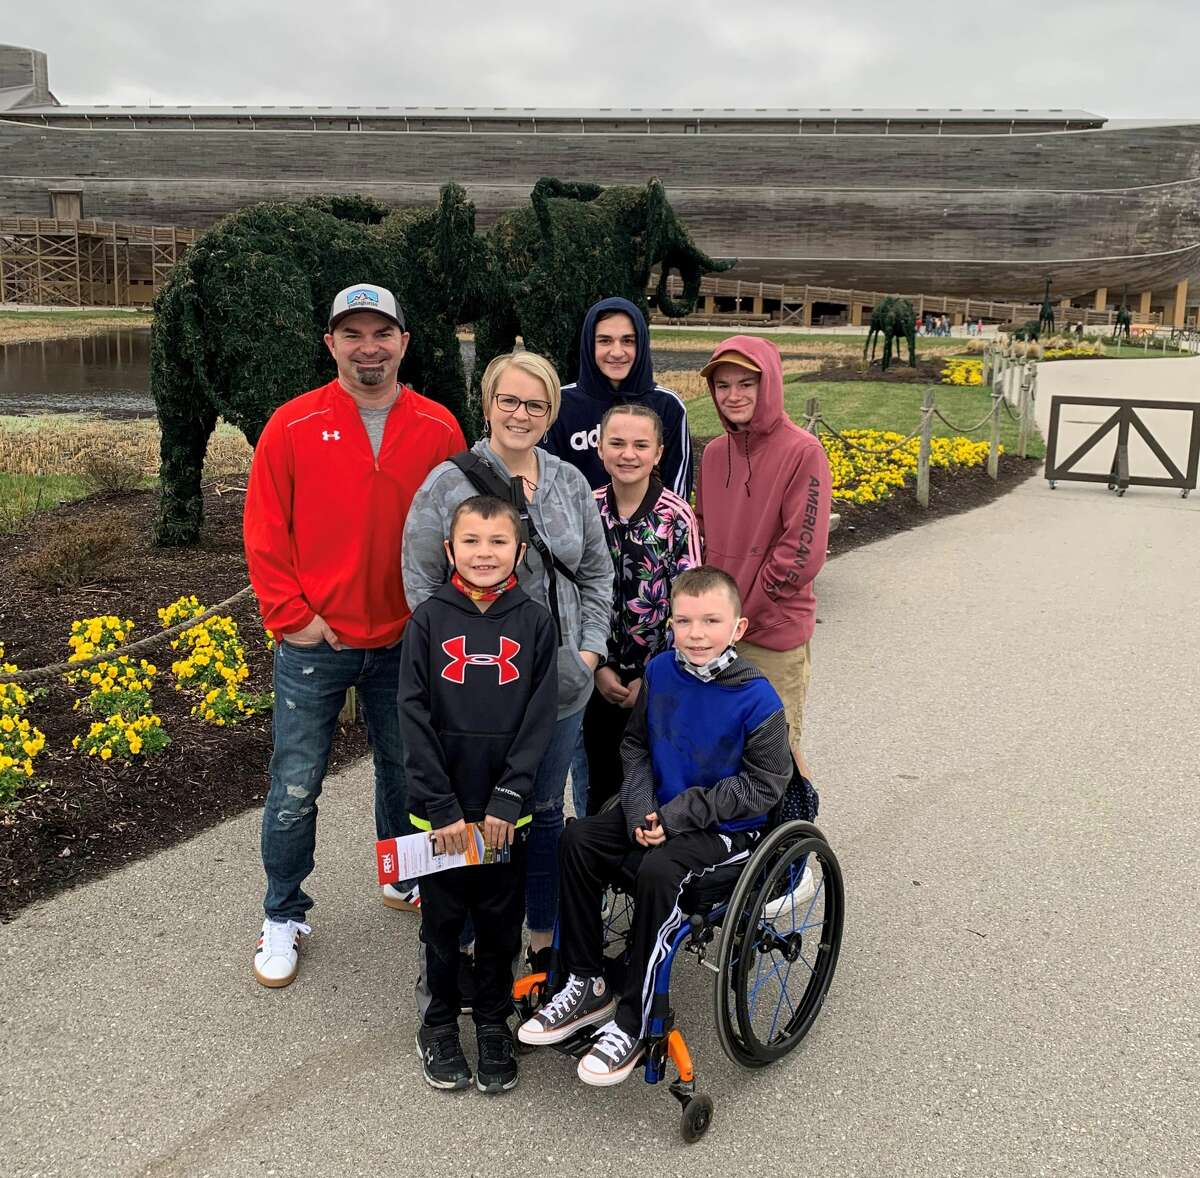 The Fuller family and parents Sarah and Kenny have donated to the Hemlock Park Project's splash pad fund in honor of their now-ten year old son Chase, who was involved in an accident in 2019 with Kenny and two of his brothers which left him paraplegic.